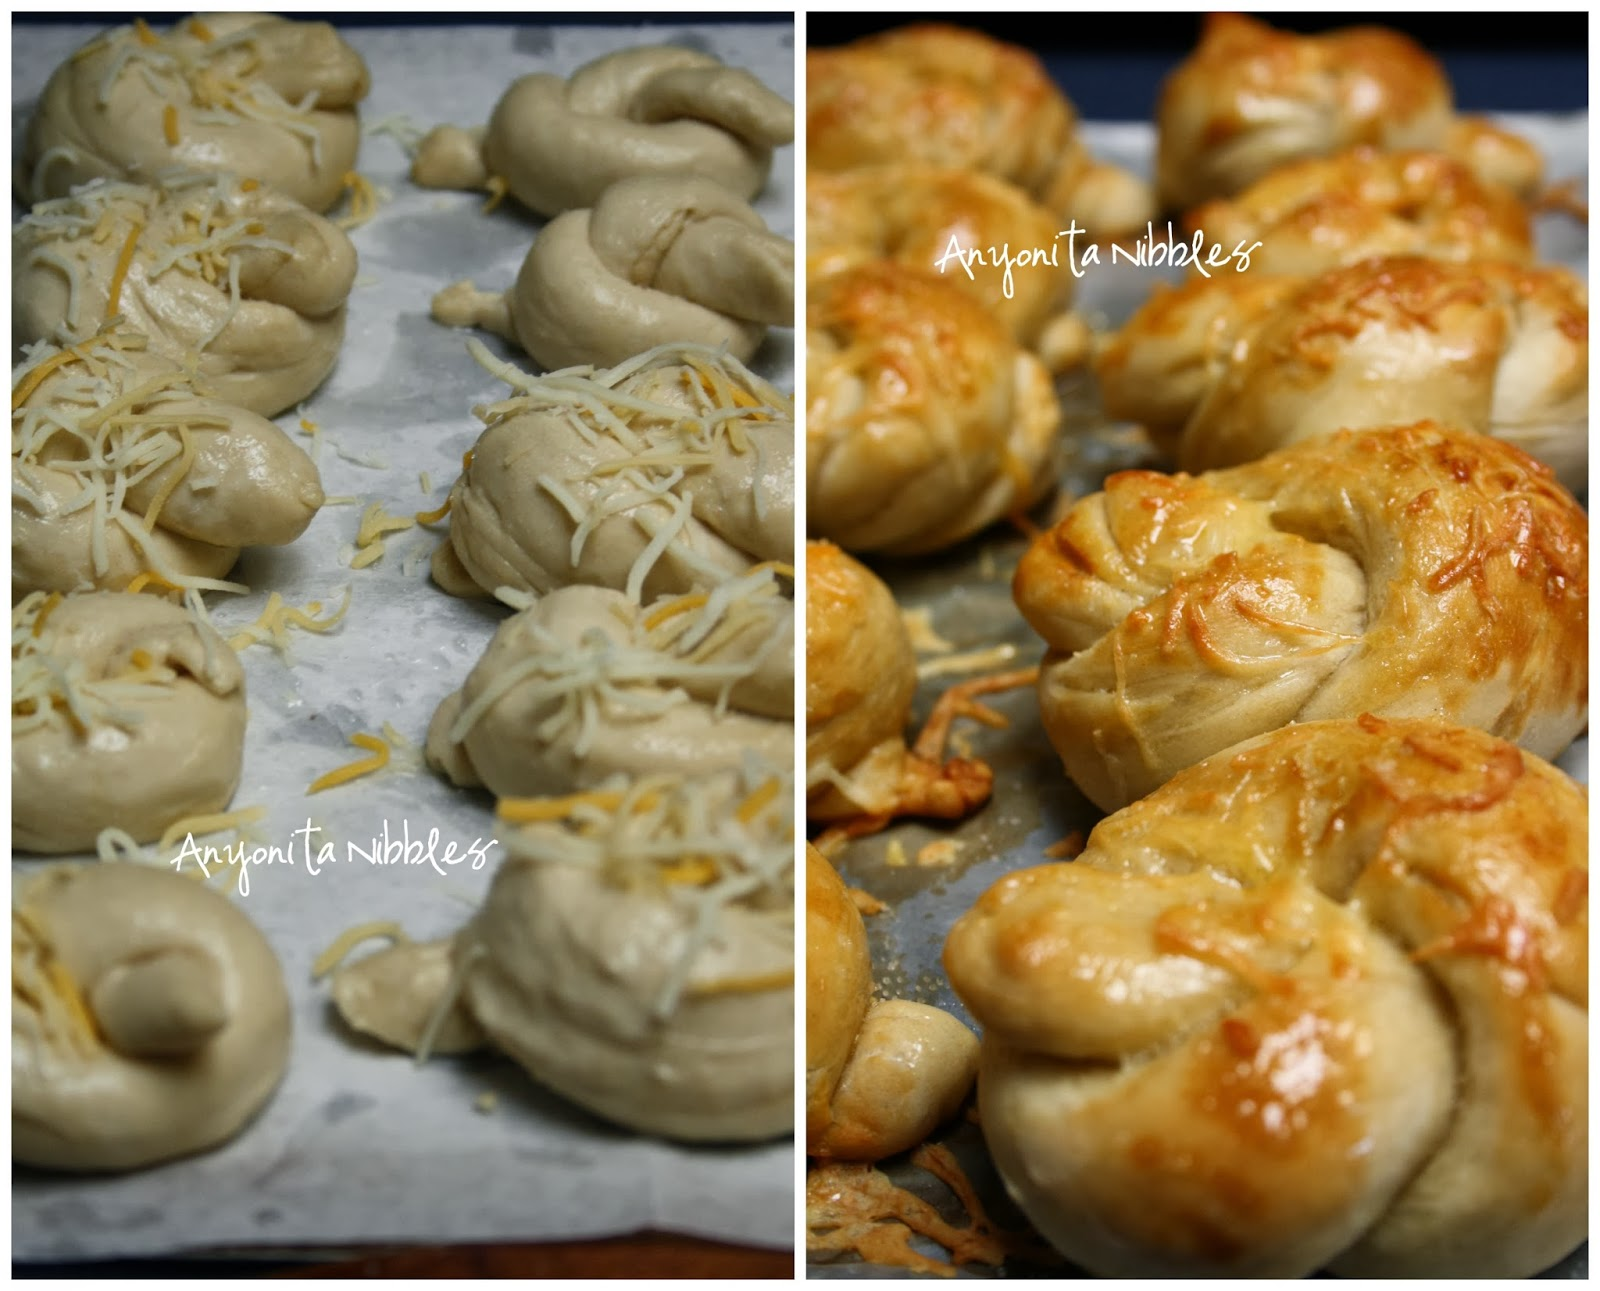 Uncooked and Cooked Cheesy Soft Pretzel Knots from www.anyonita-nibbles.com